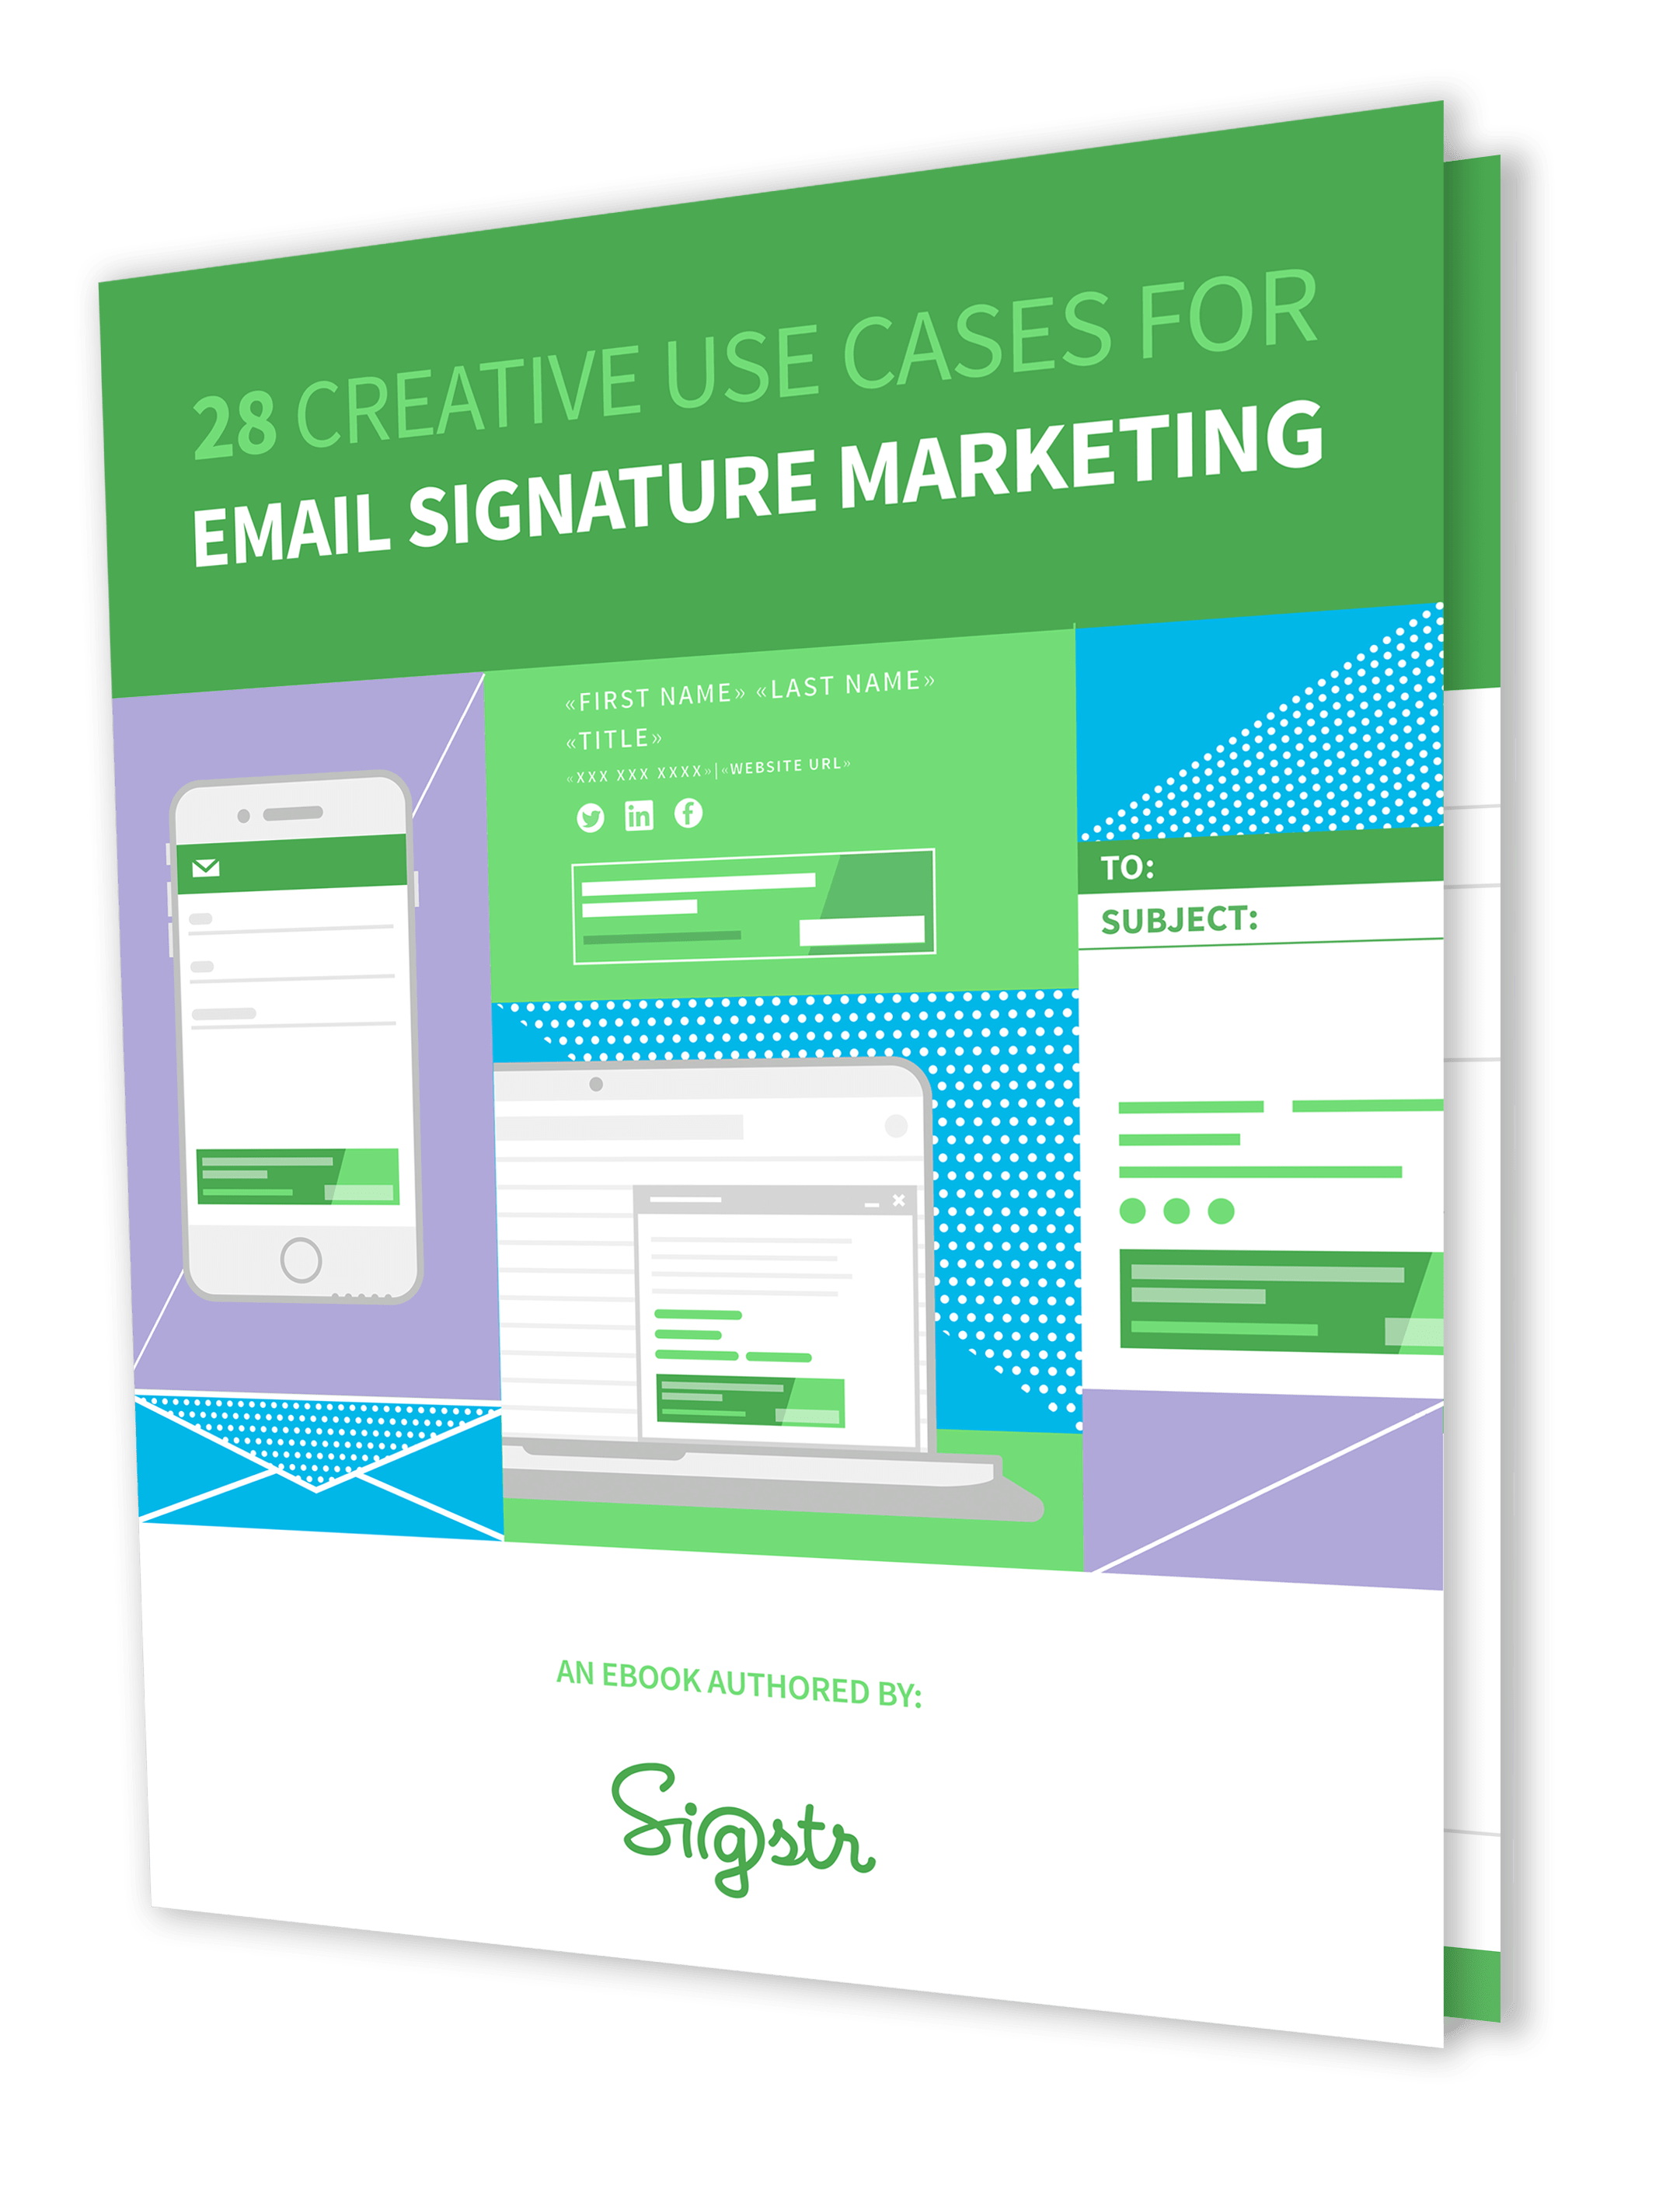 SigstrEmailSignatureMarketingEbookCover.png